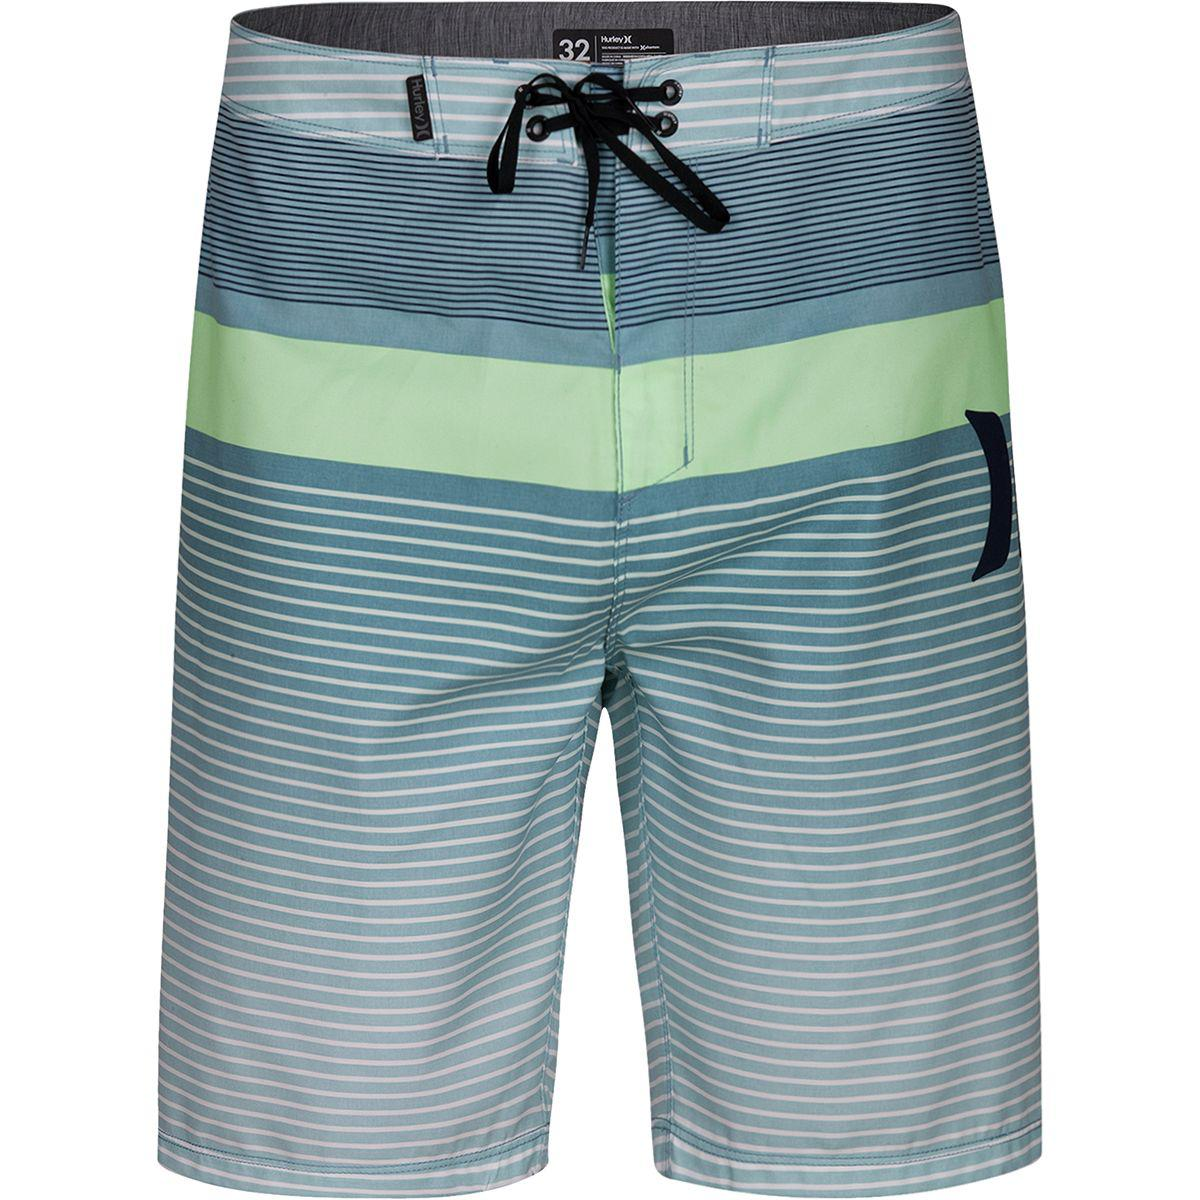 3c93b85813 Lyst - Hurley Line Up Board Short in Blue for Men